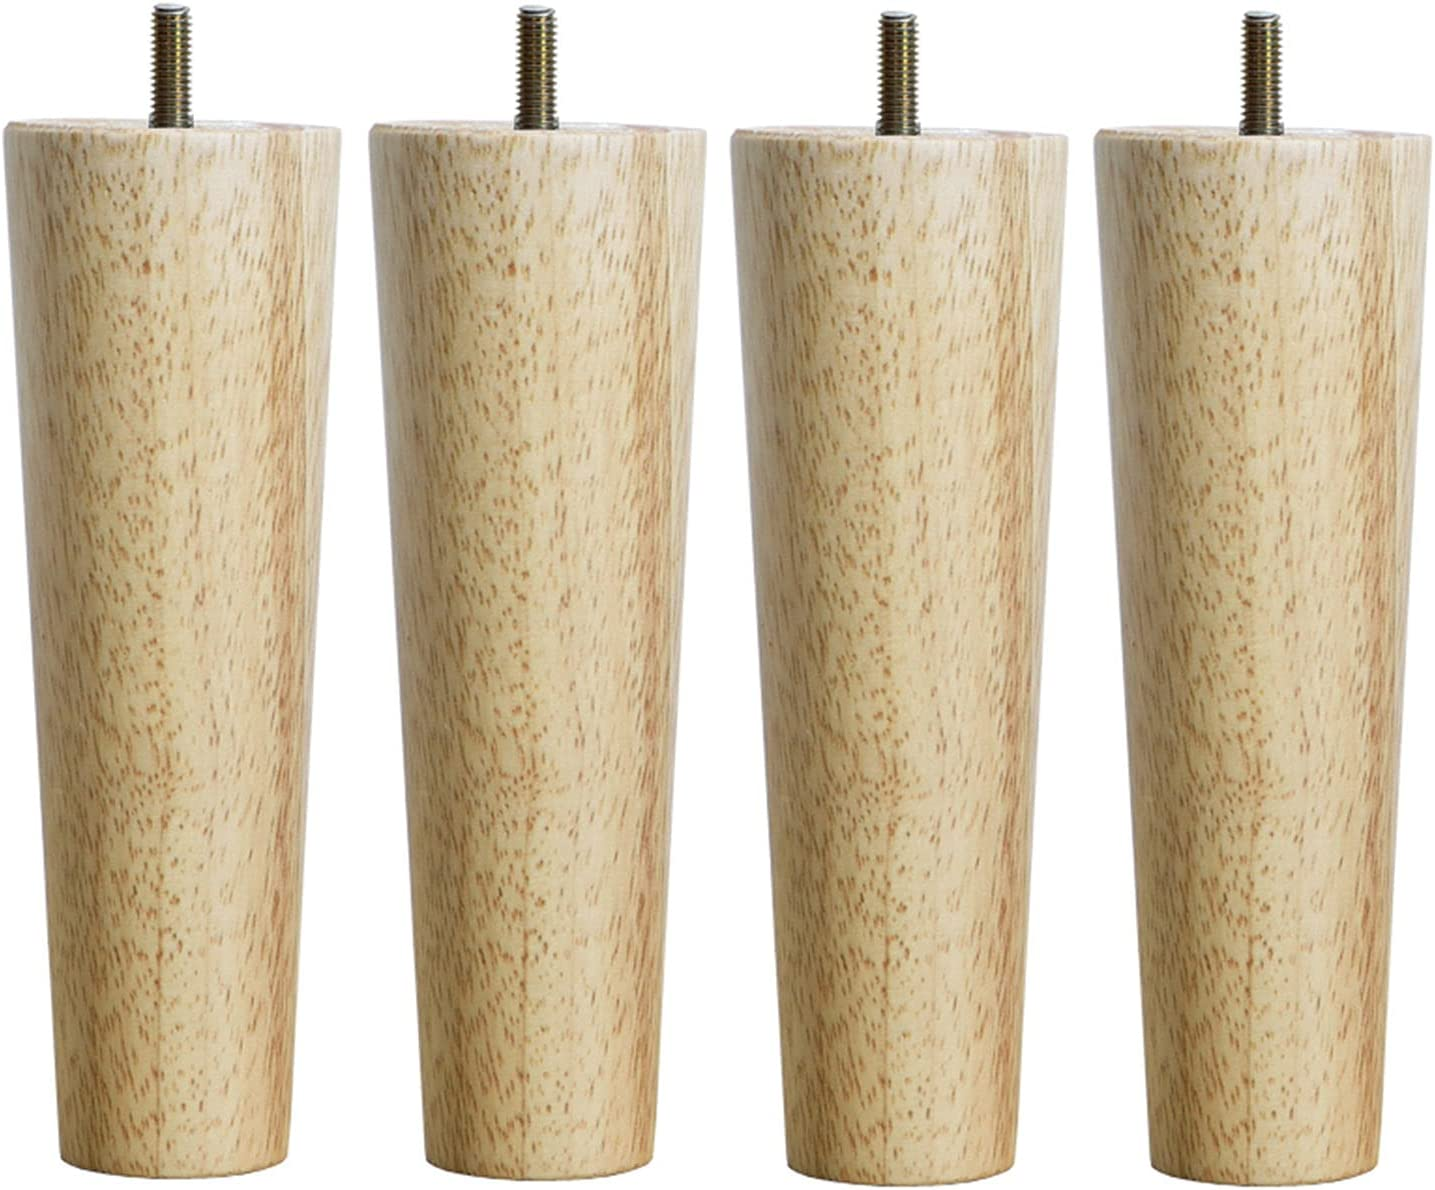 YHBZ Furniture feet Wood Table Award-winning store conical Max 47% OFF Solid Replaceme Legs